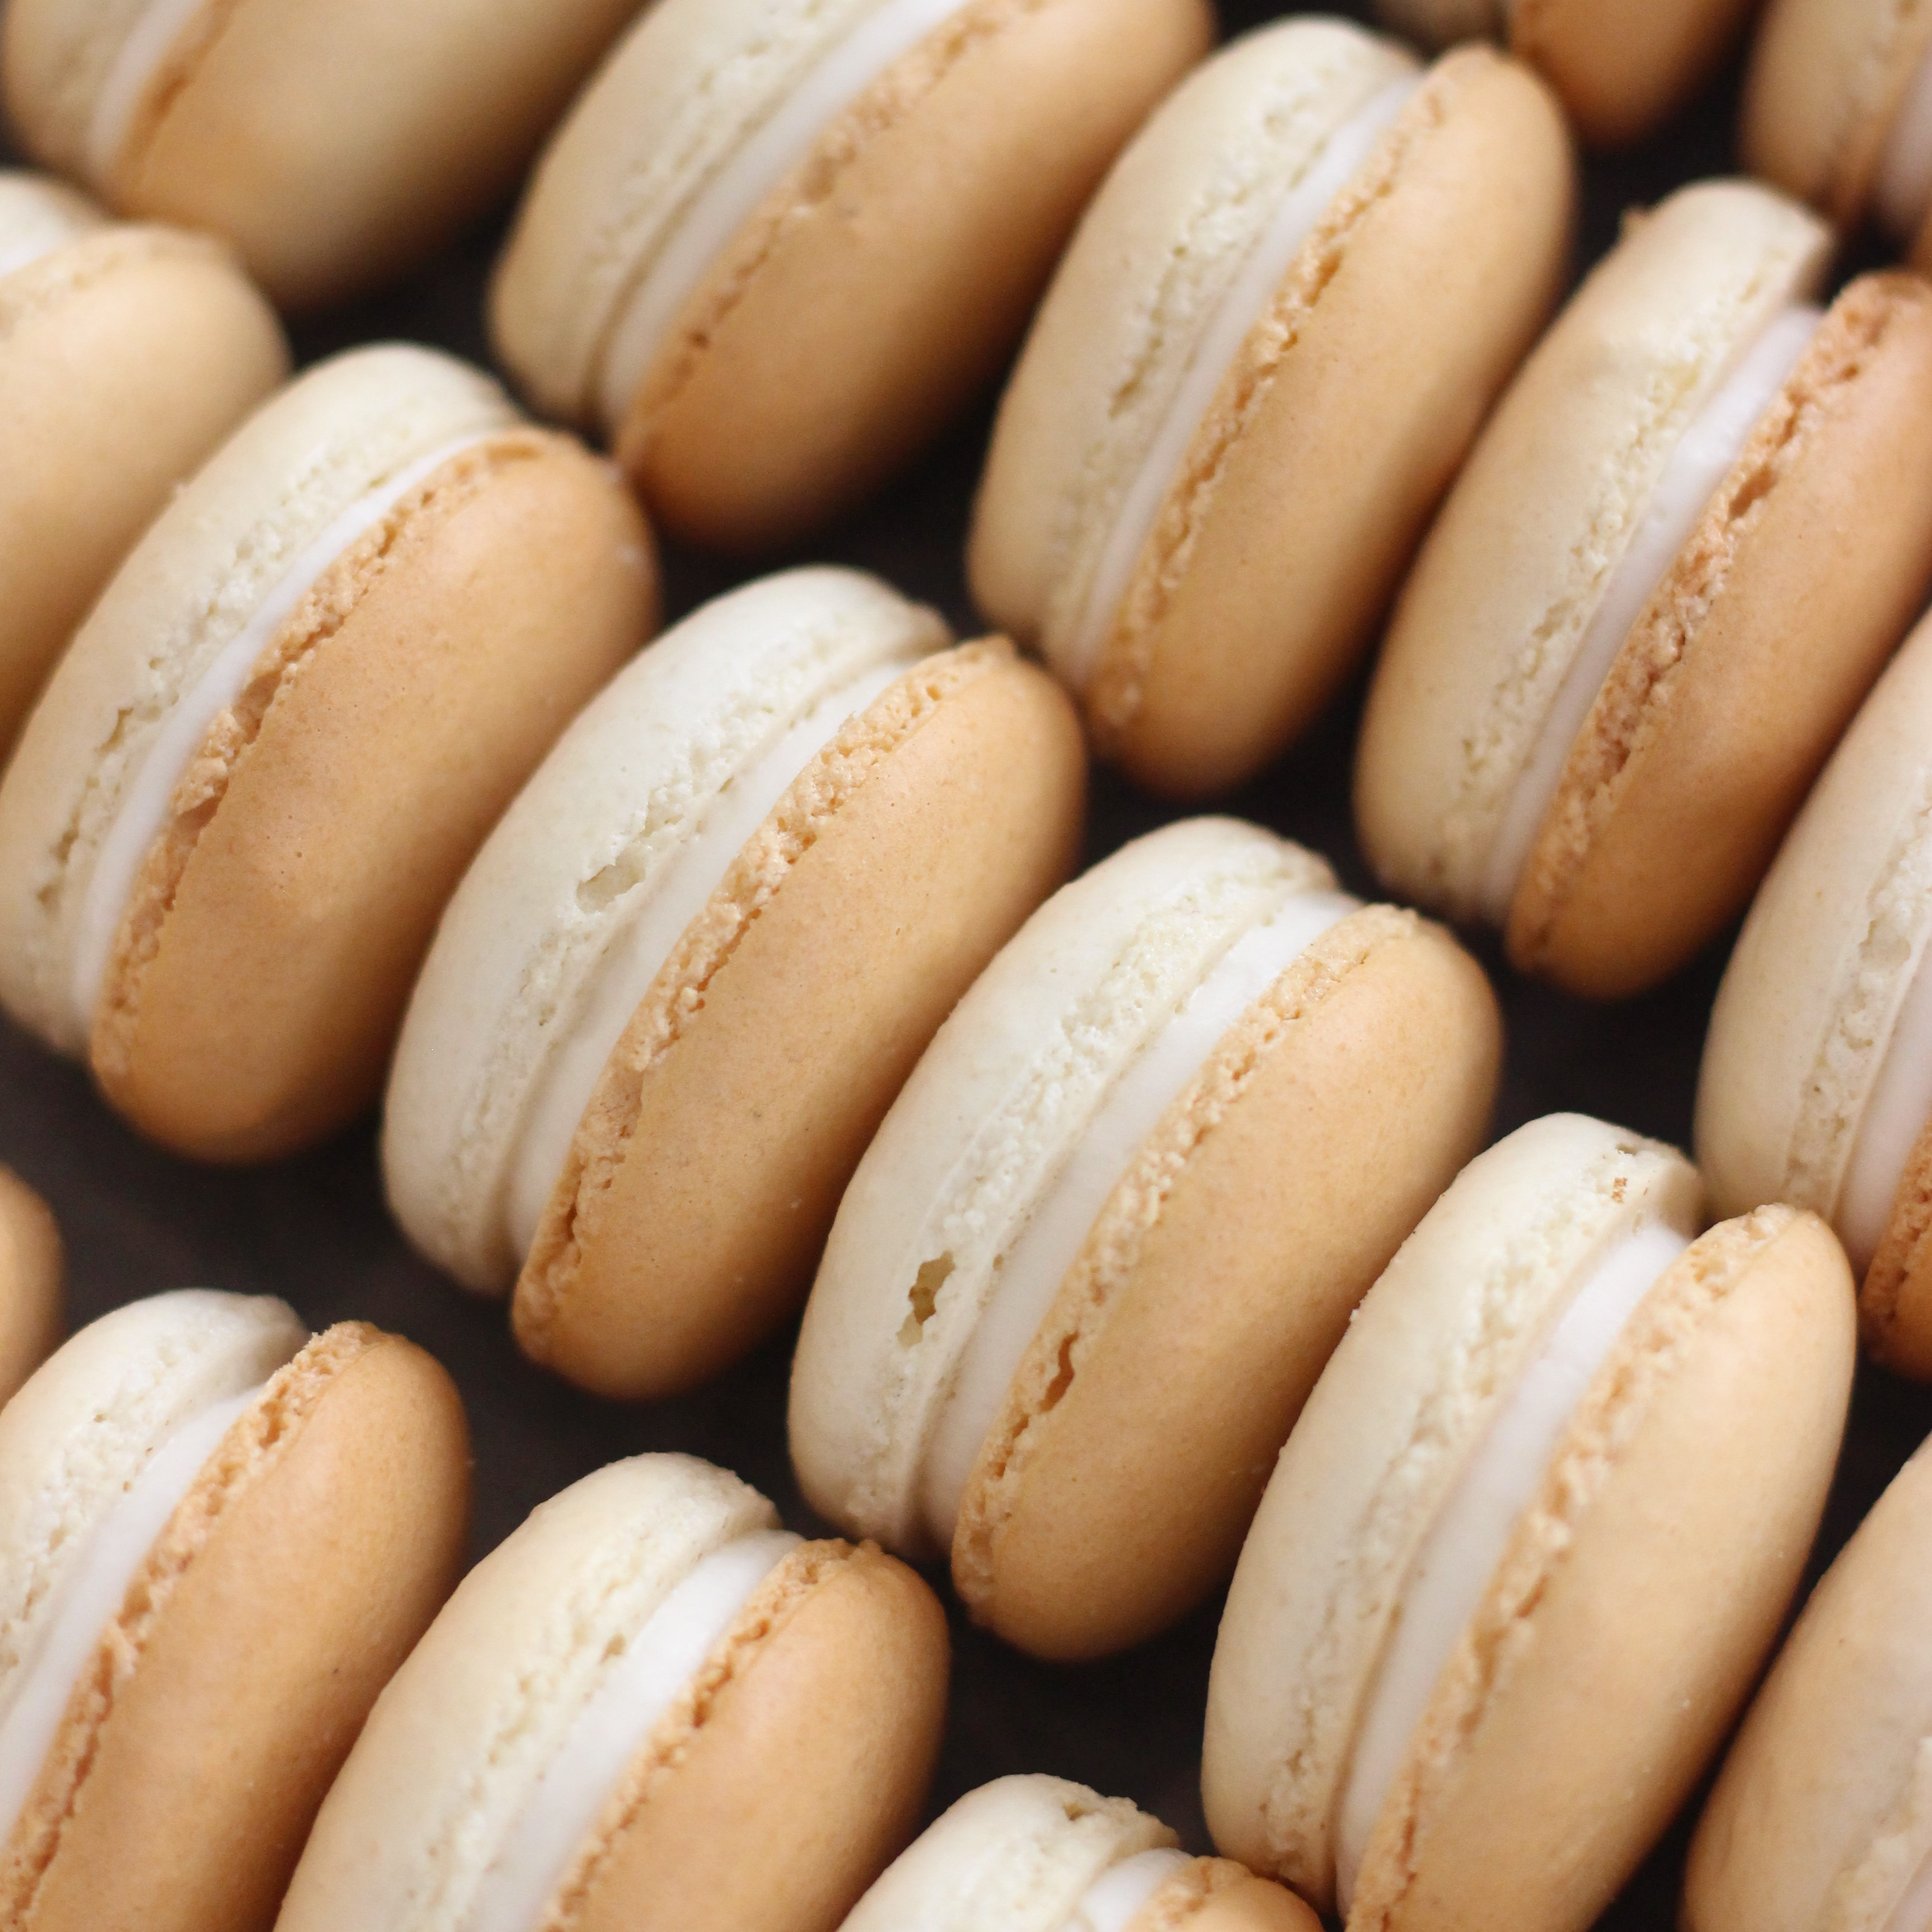 vanilla bean macarons from French Bakery in sussex county nj cafe pierrot